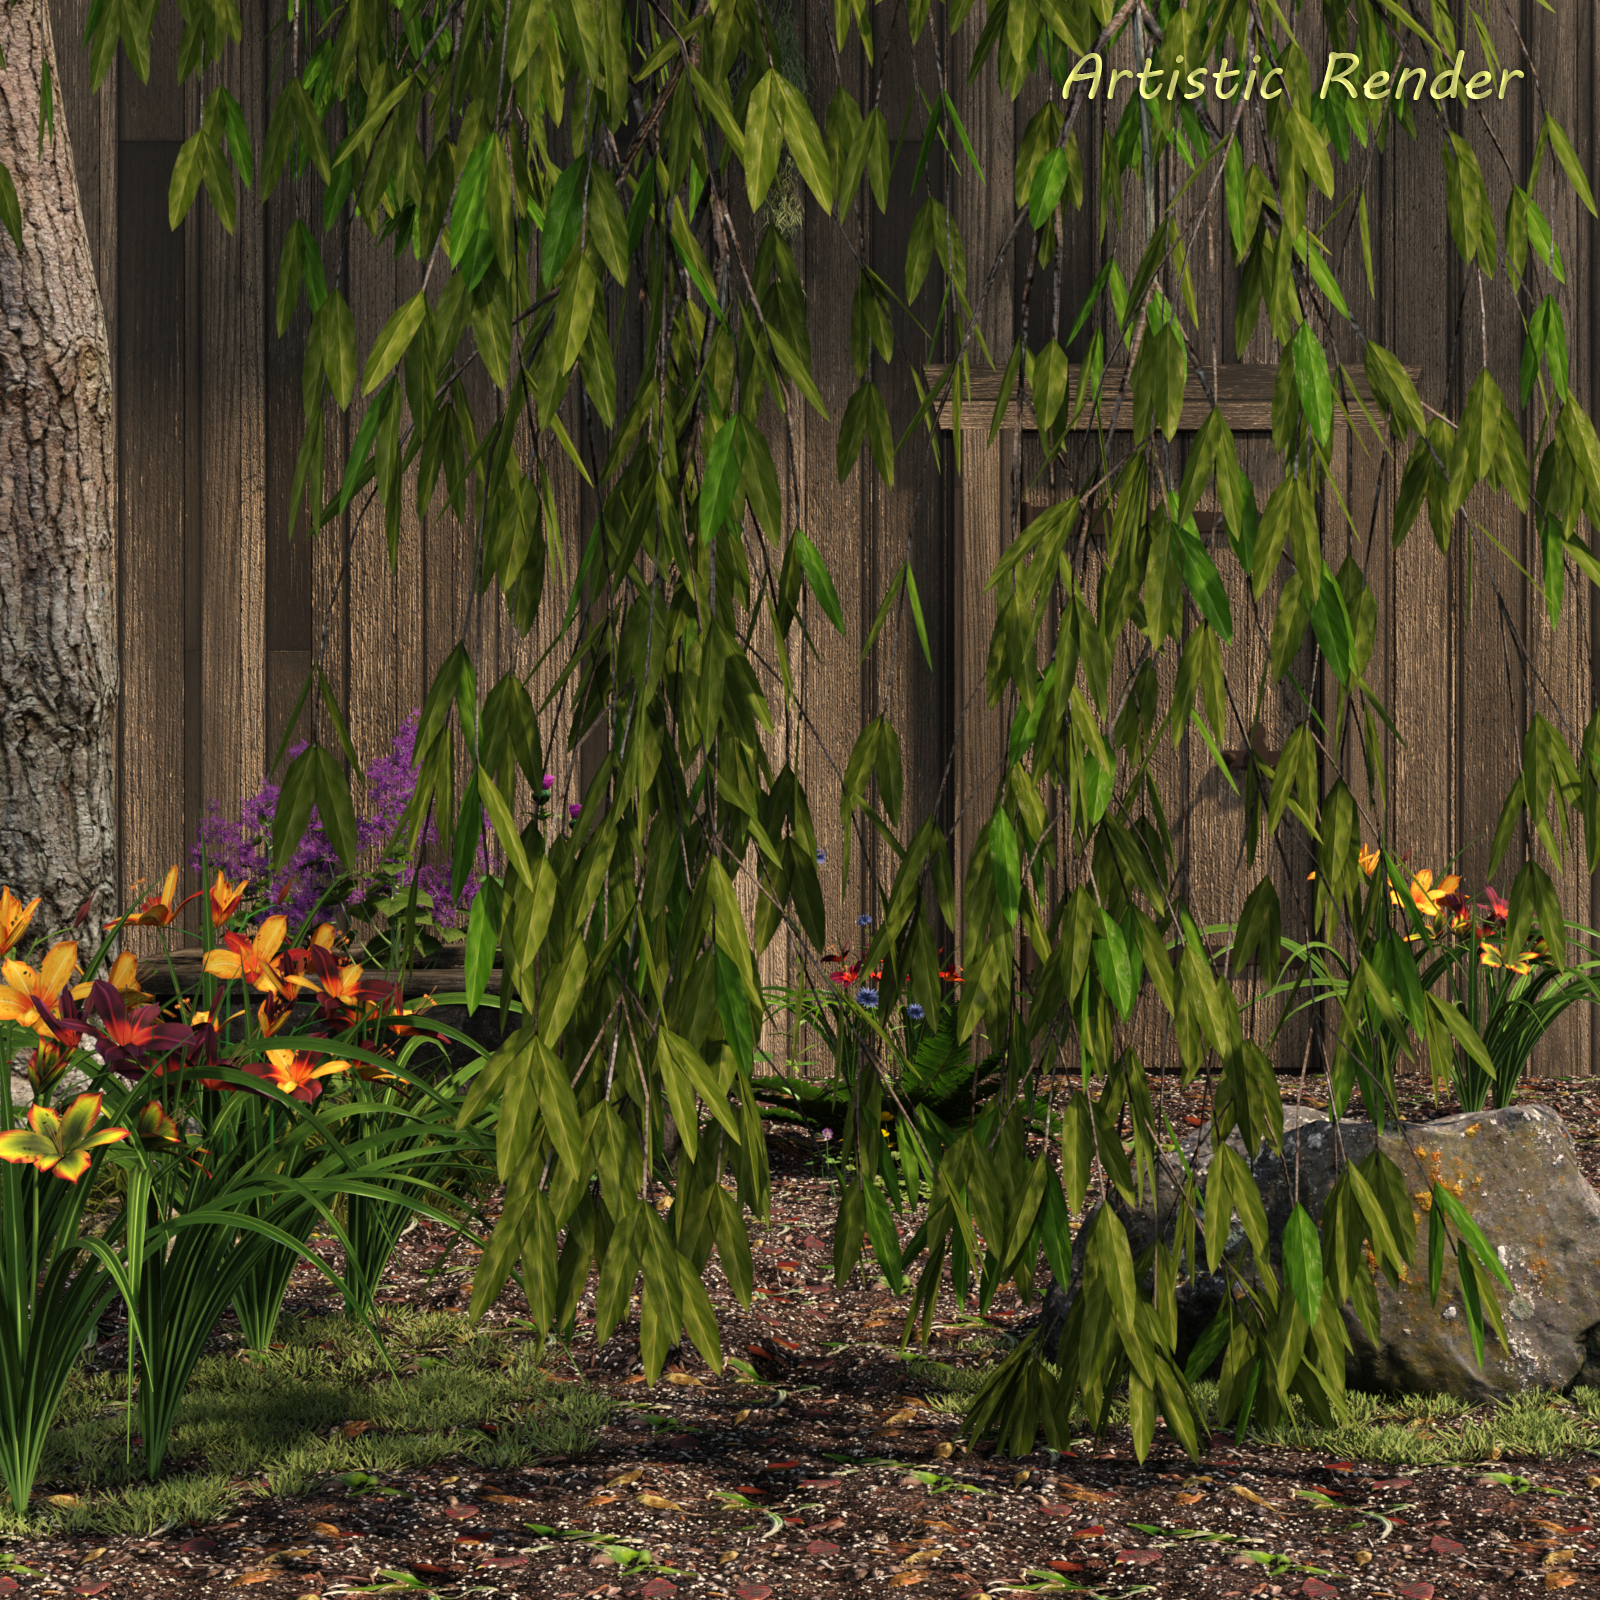 FB Natural Ground Iray Shaders for Daz Studio 4.10